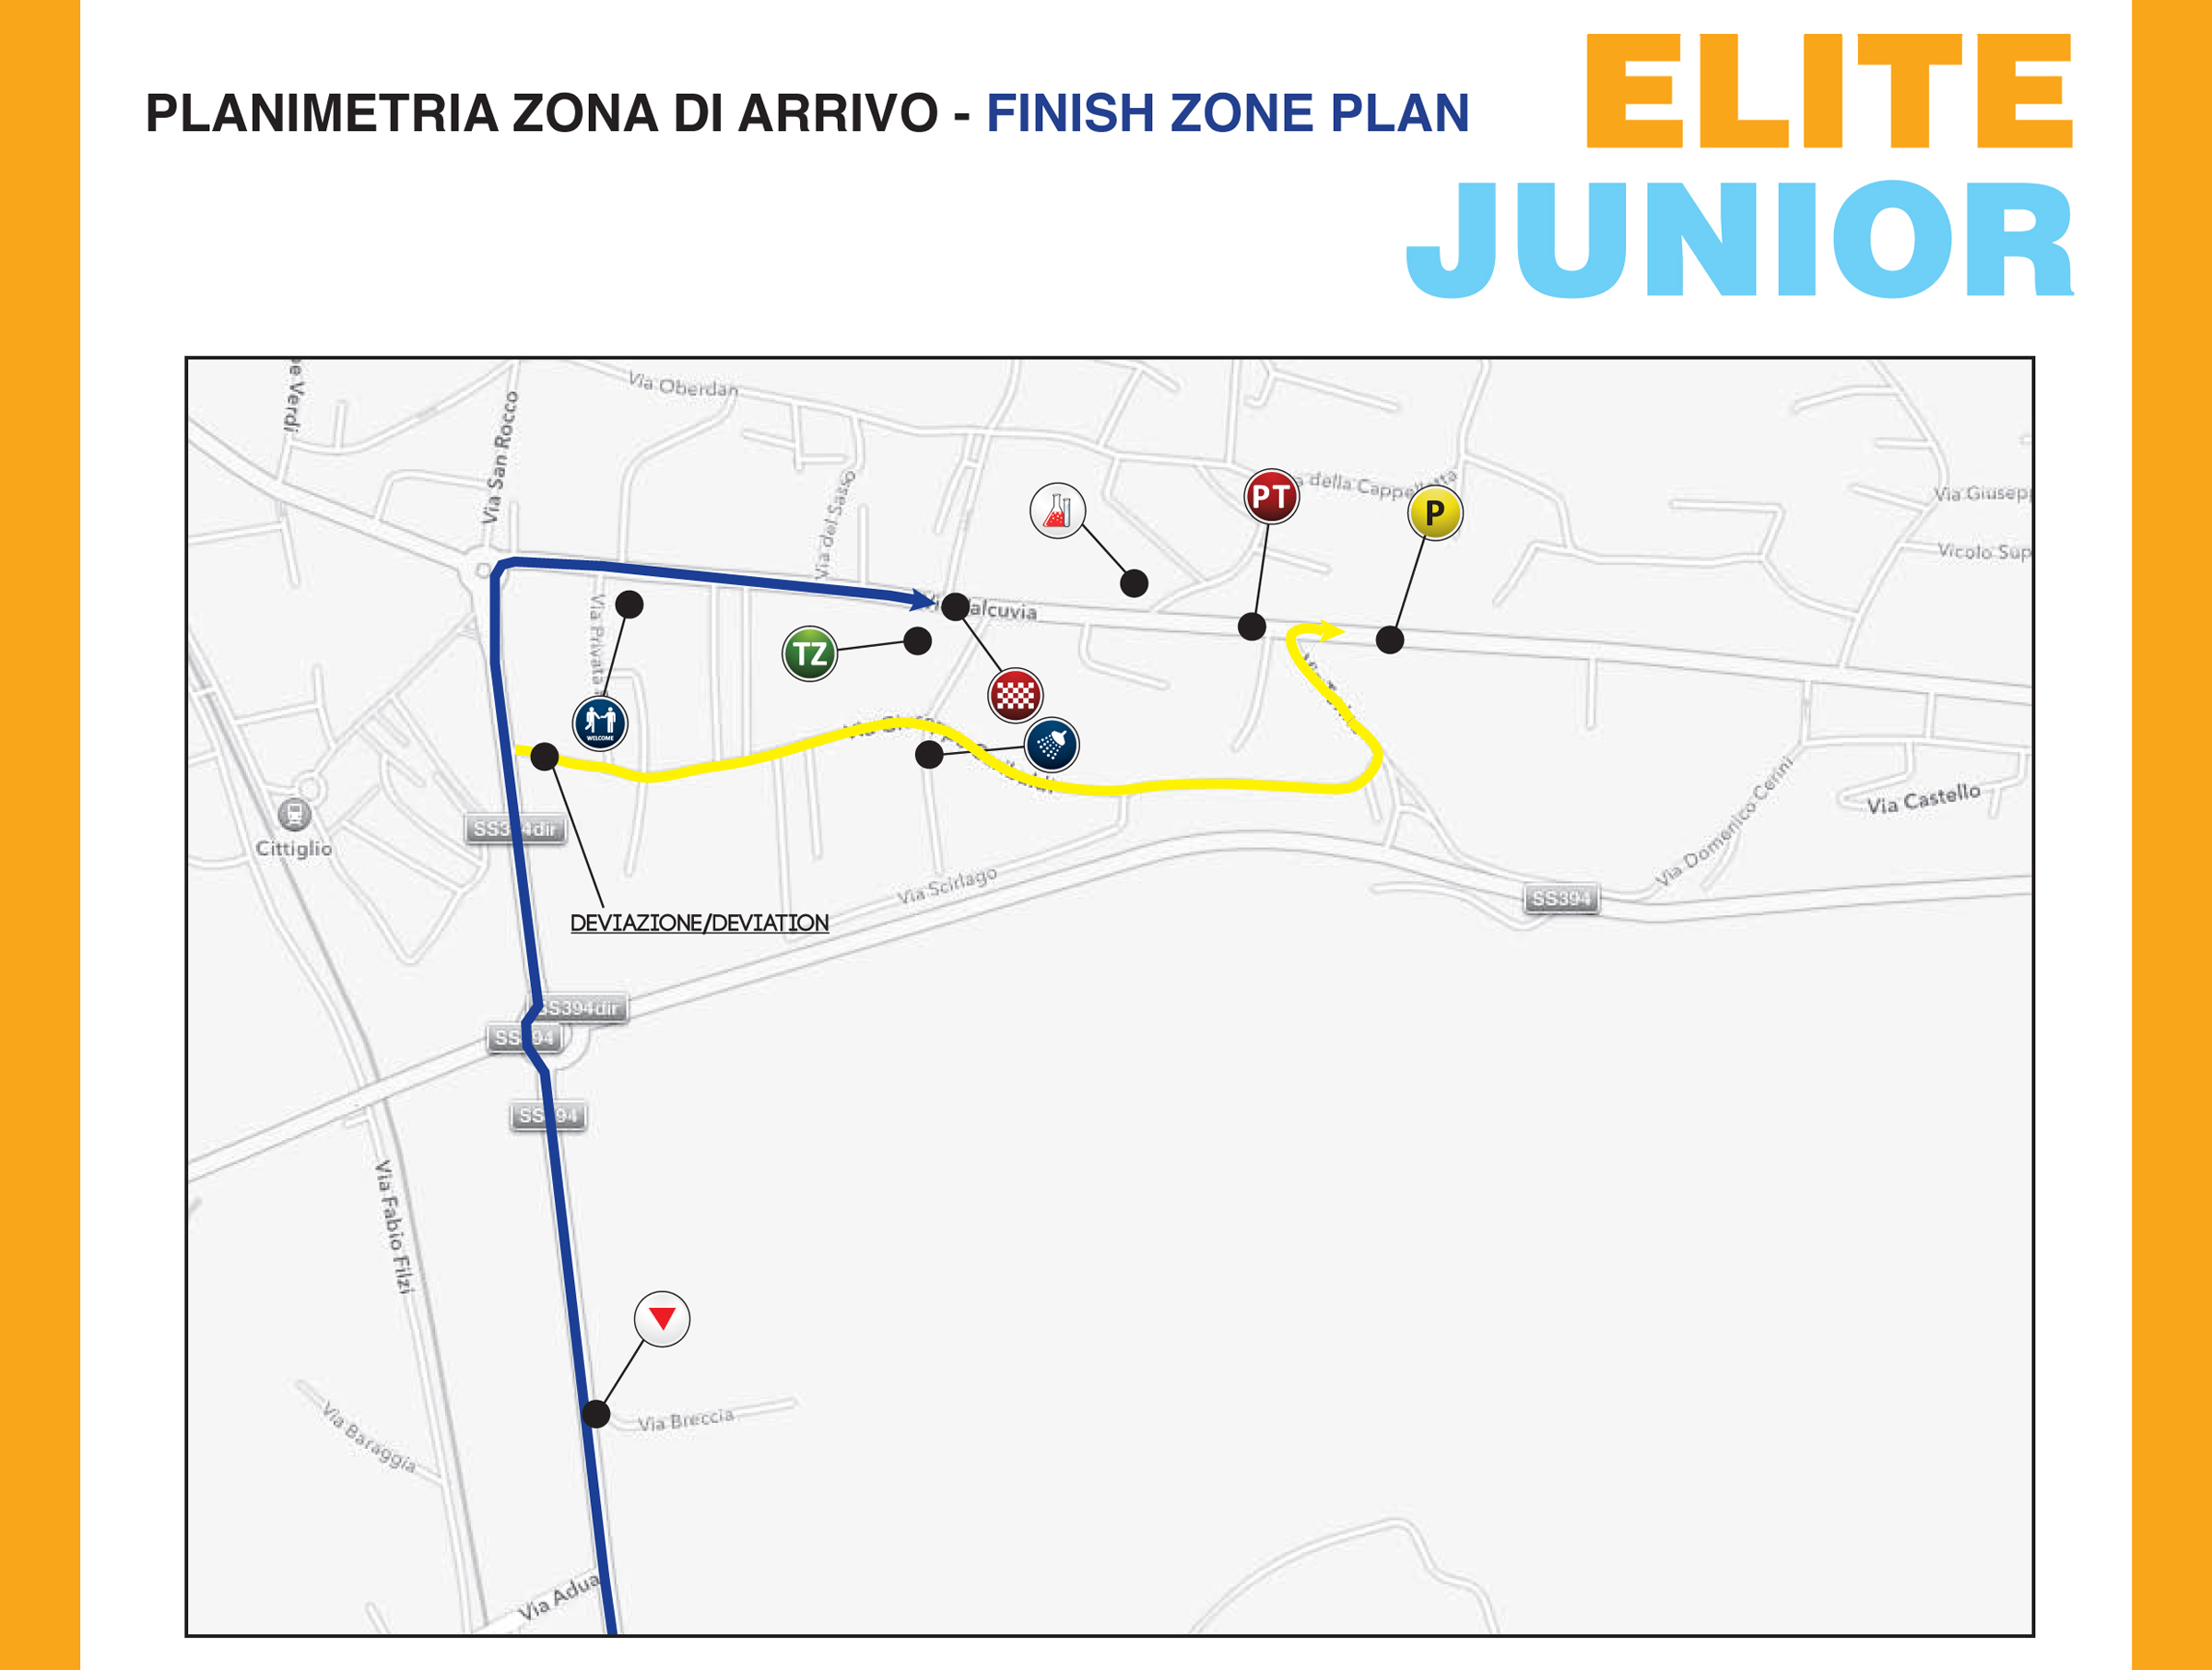 planimetria-arrivo-elite-e-junior